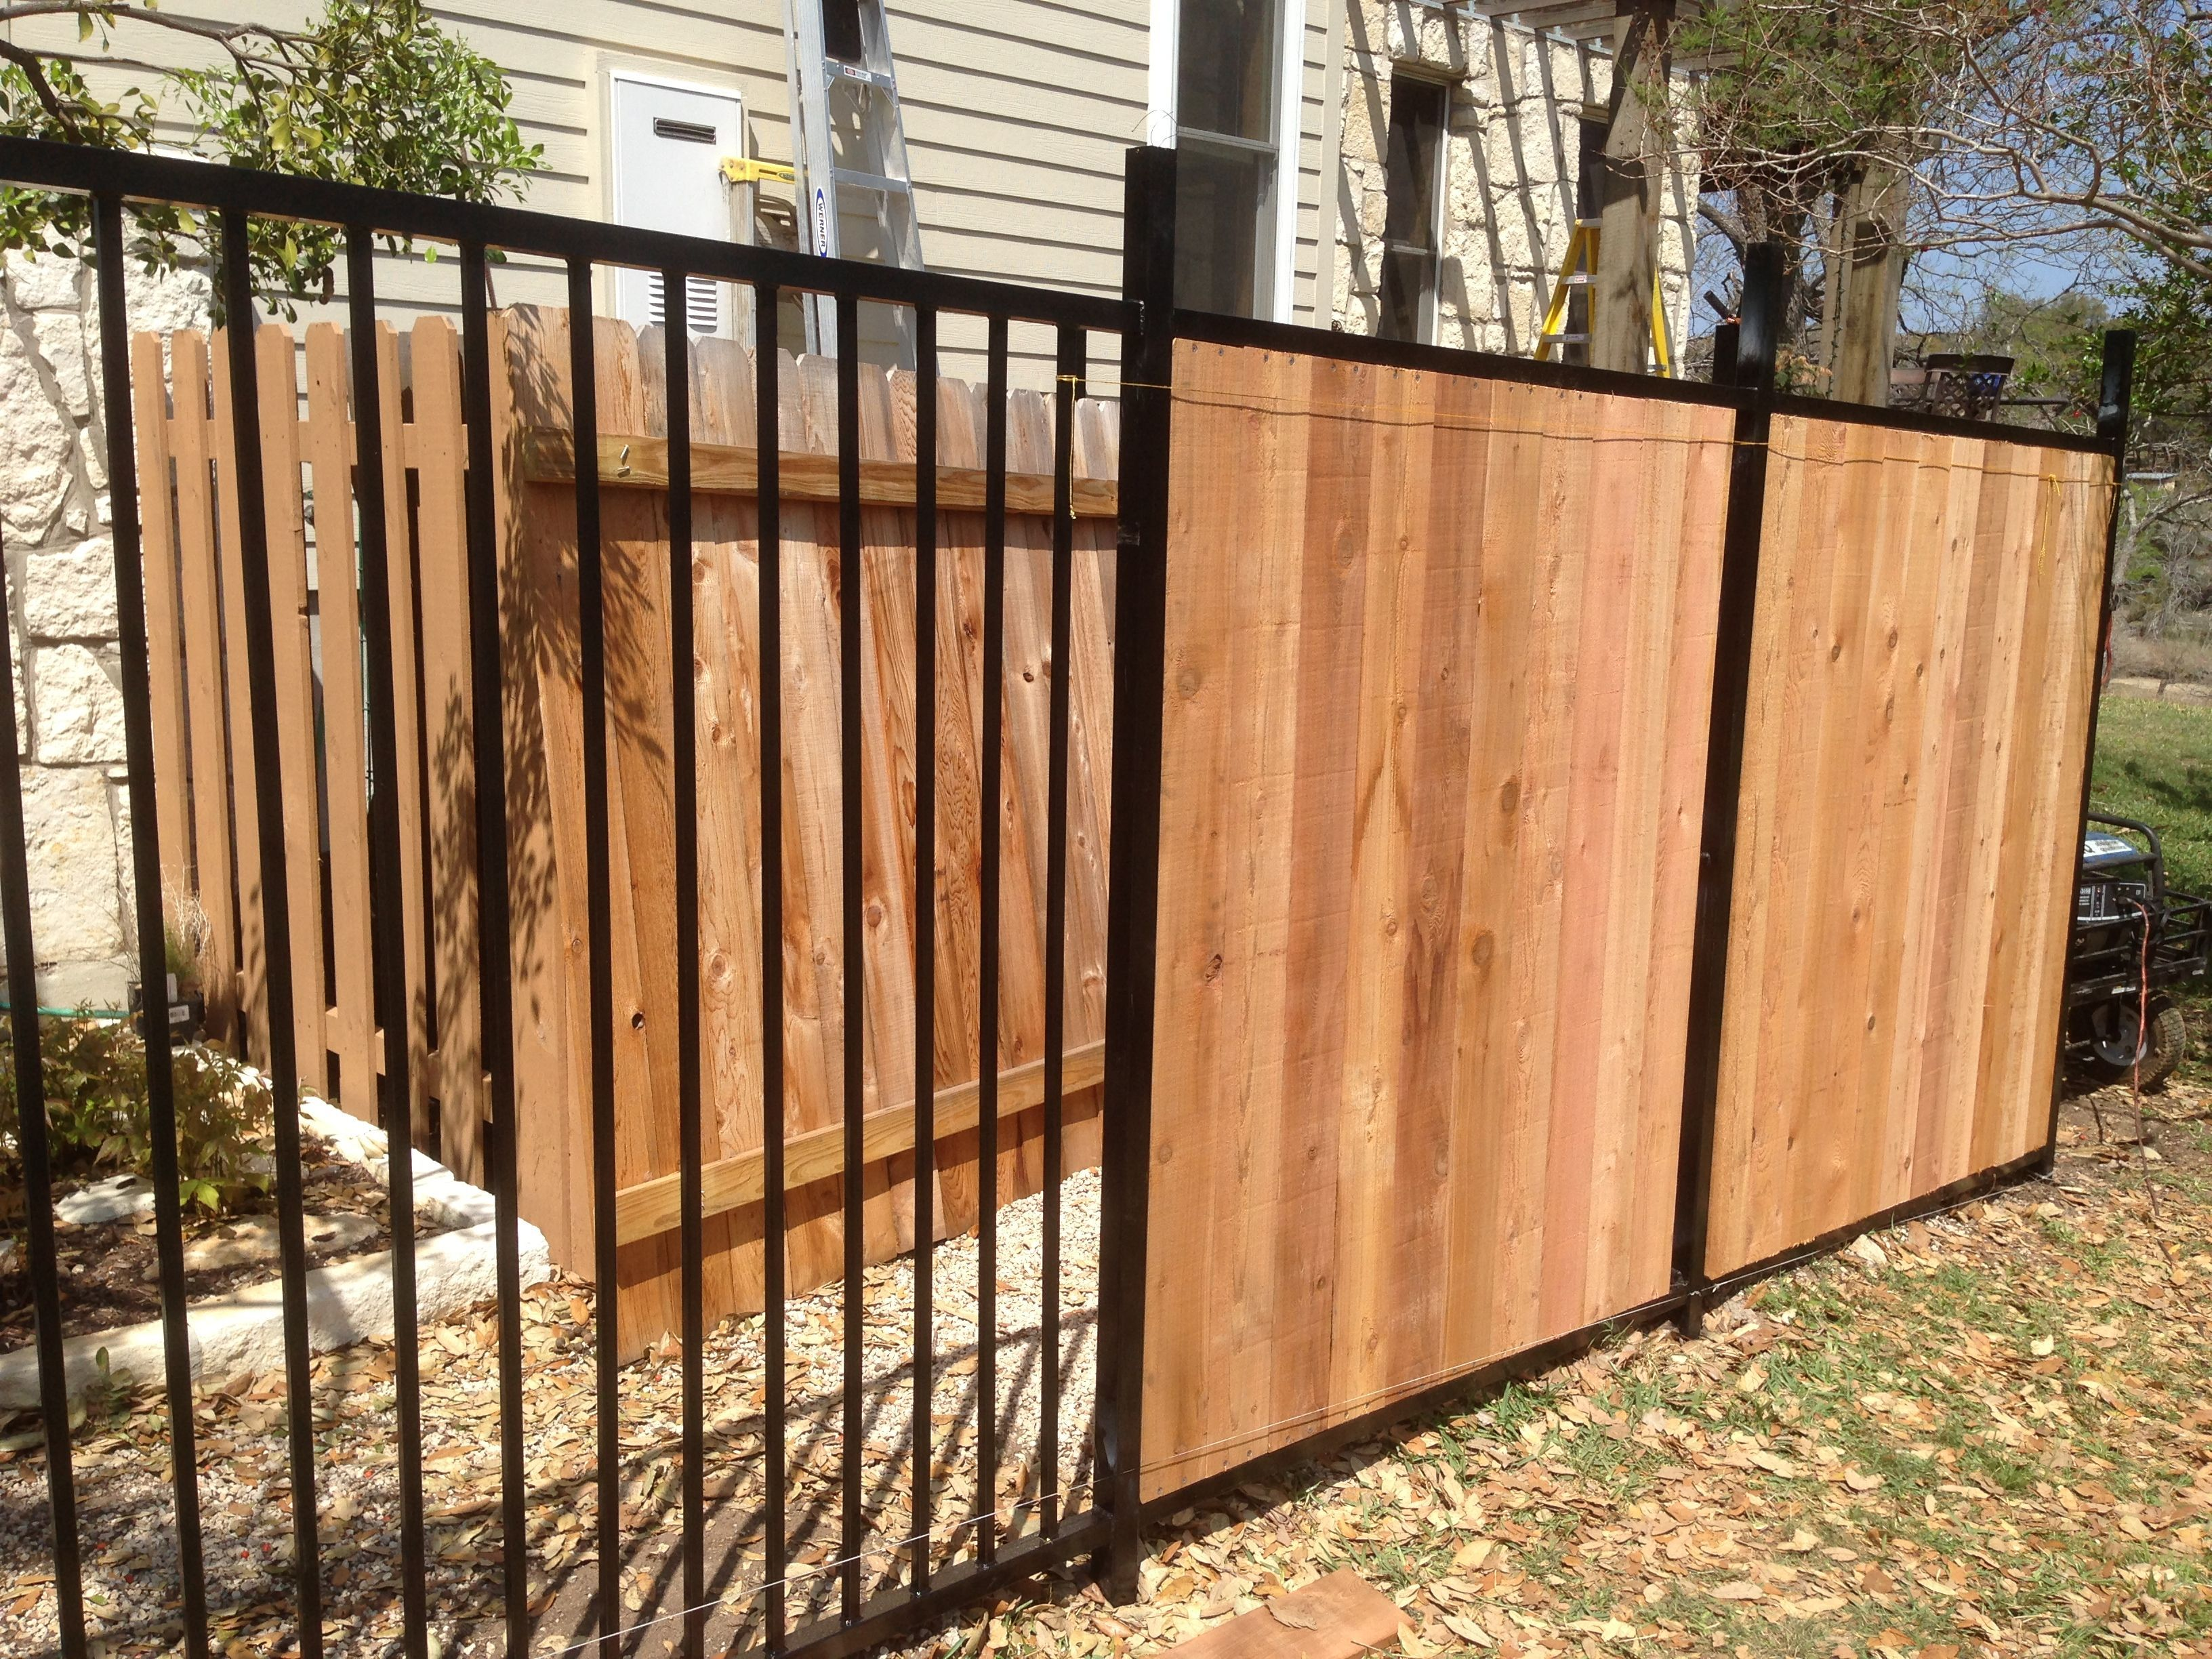 Custom Wrought Iron Fence Transitioning Into Privacy Cedar Fence Inside Proportions 3264 X 2448 Wrought Wood Privacy Fence Rod Iron Fences Wrought Iron Fences